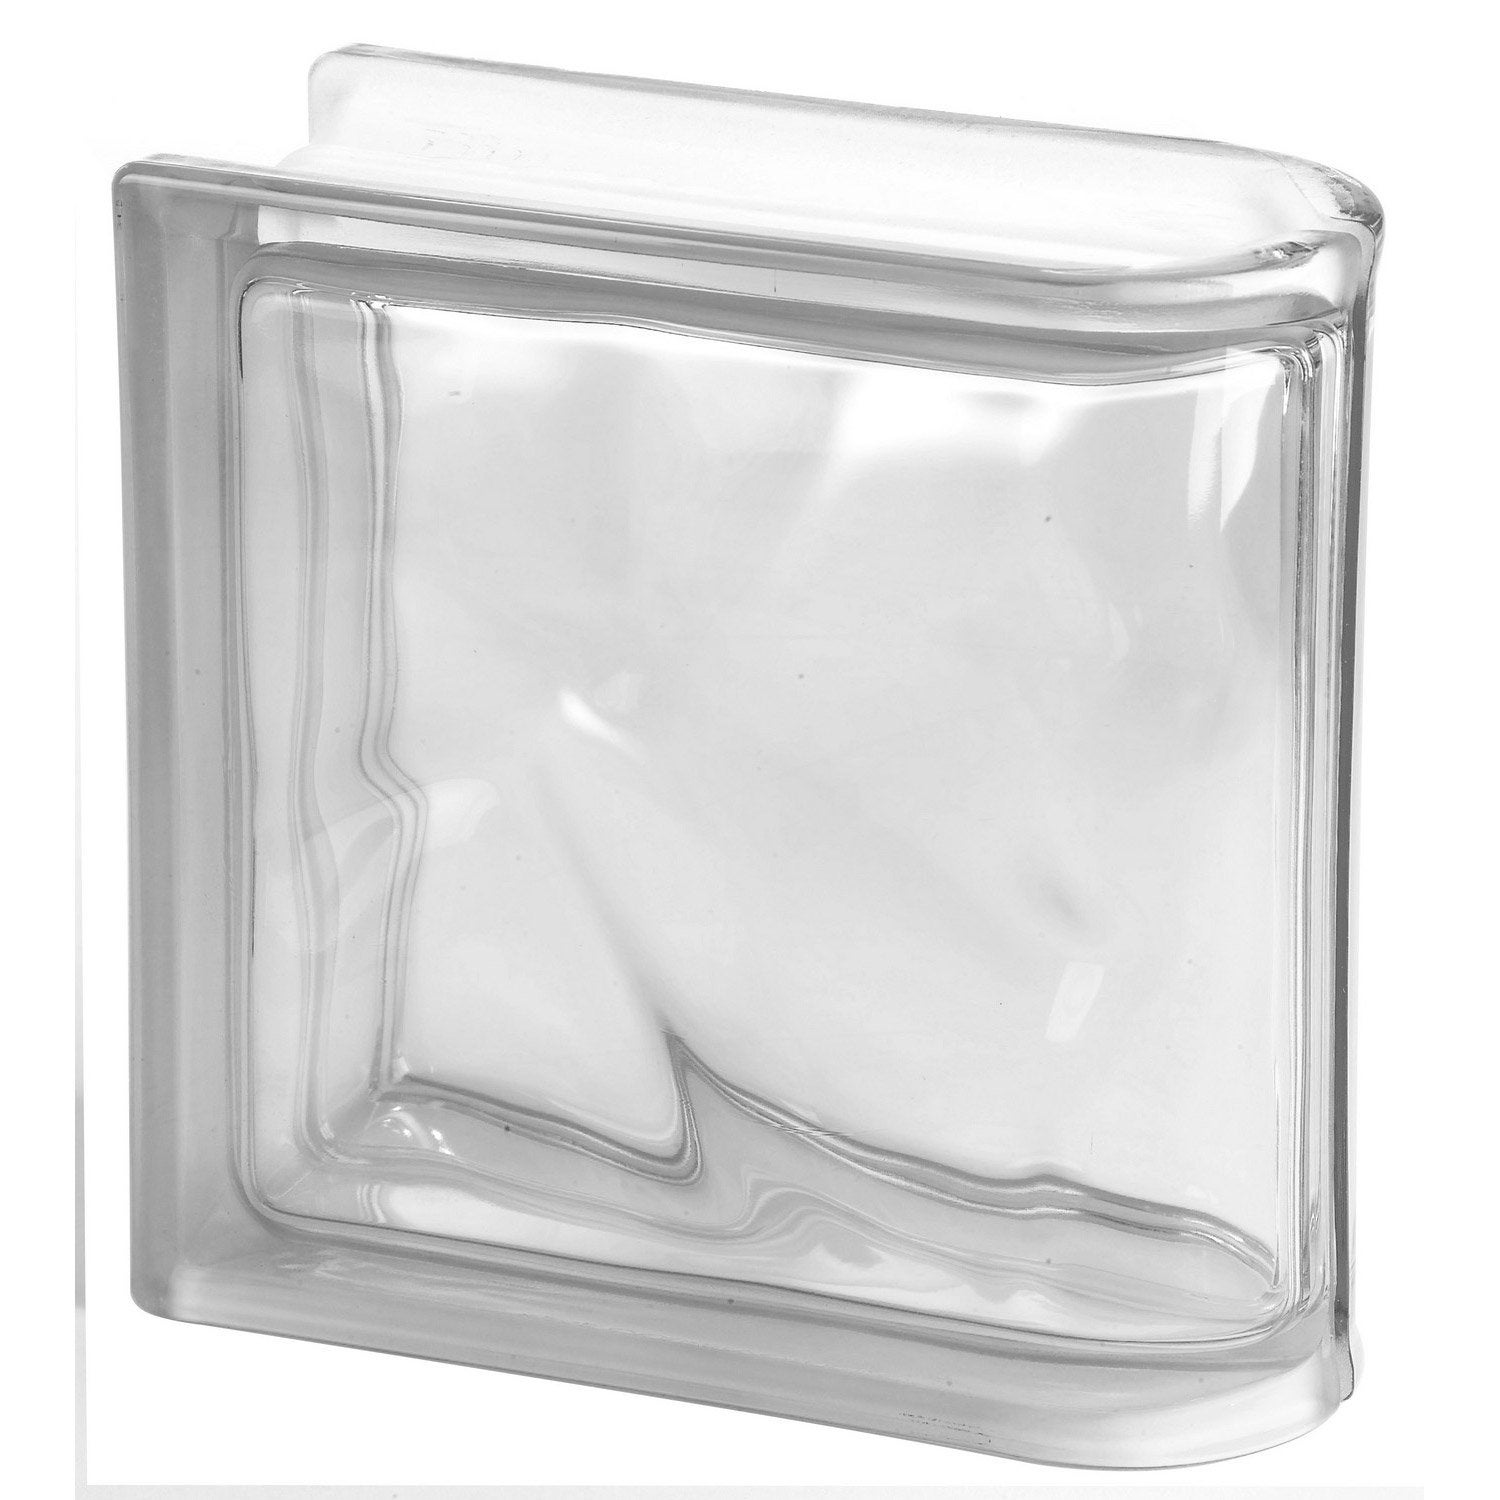 Brique de verre transparent ondul brillant leroy merlin for Pose de brique de verre